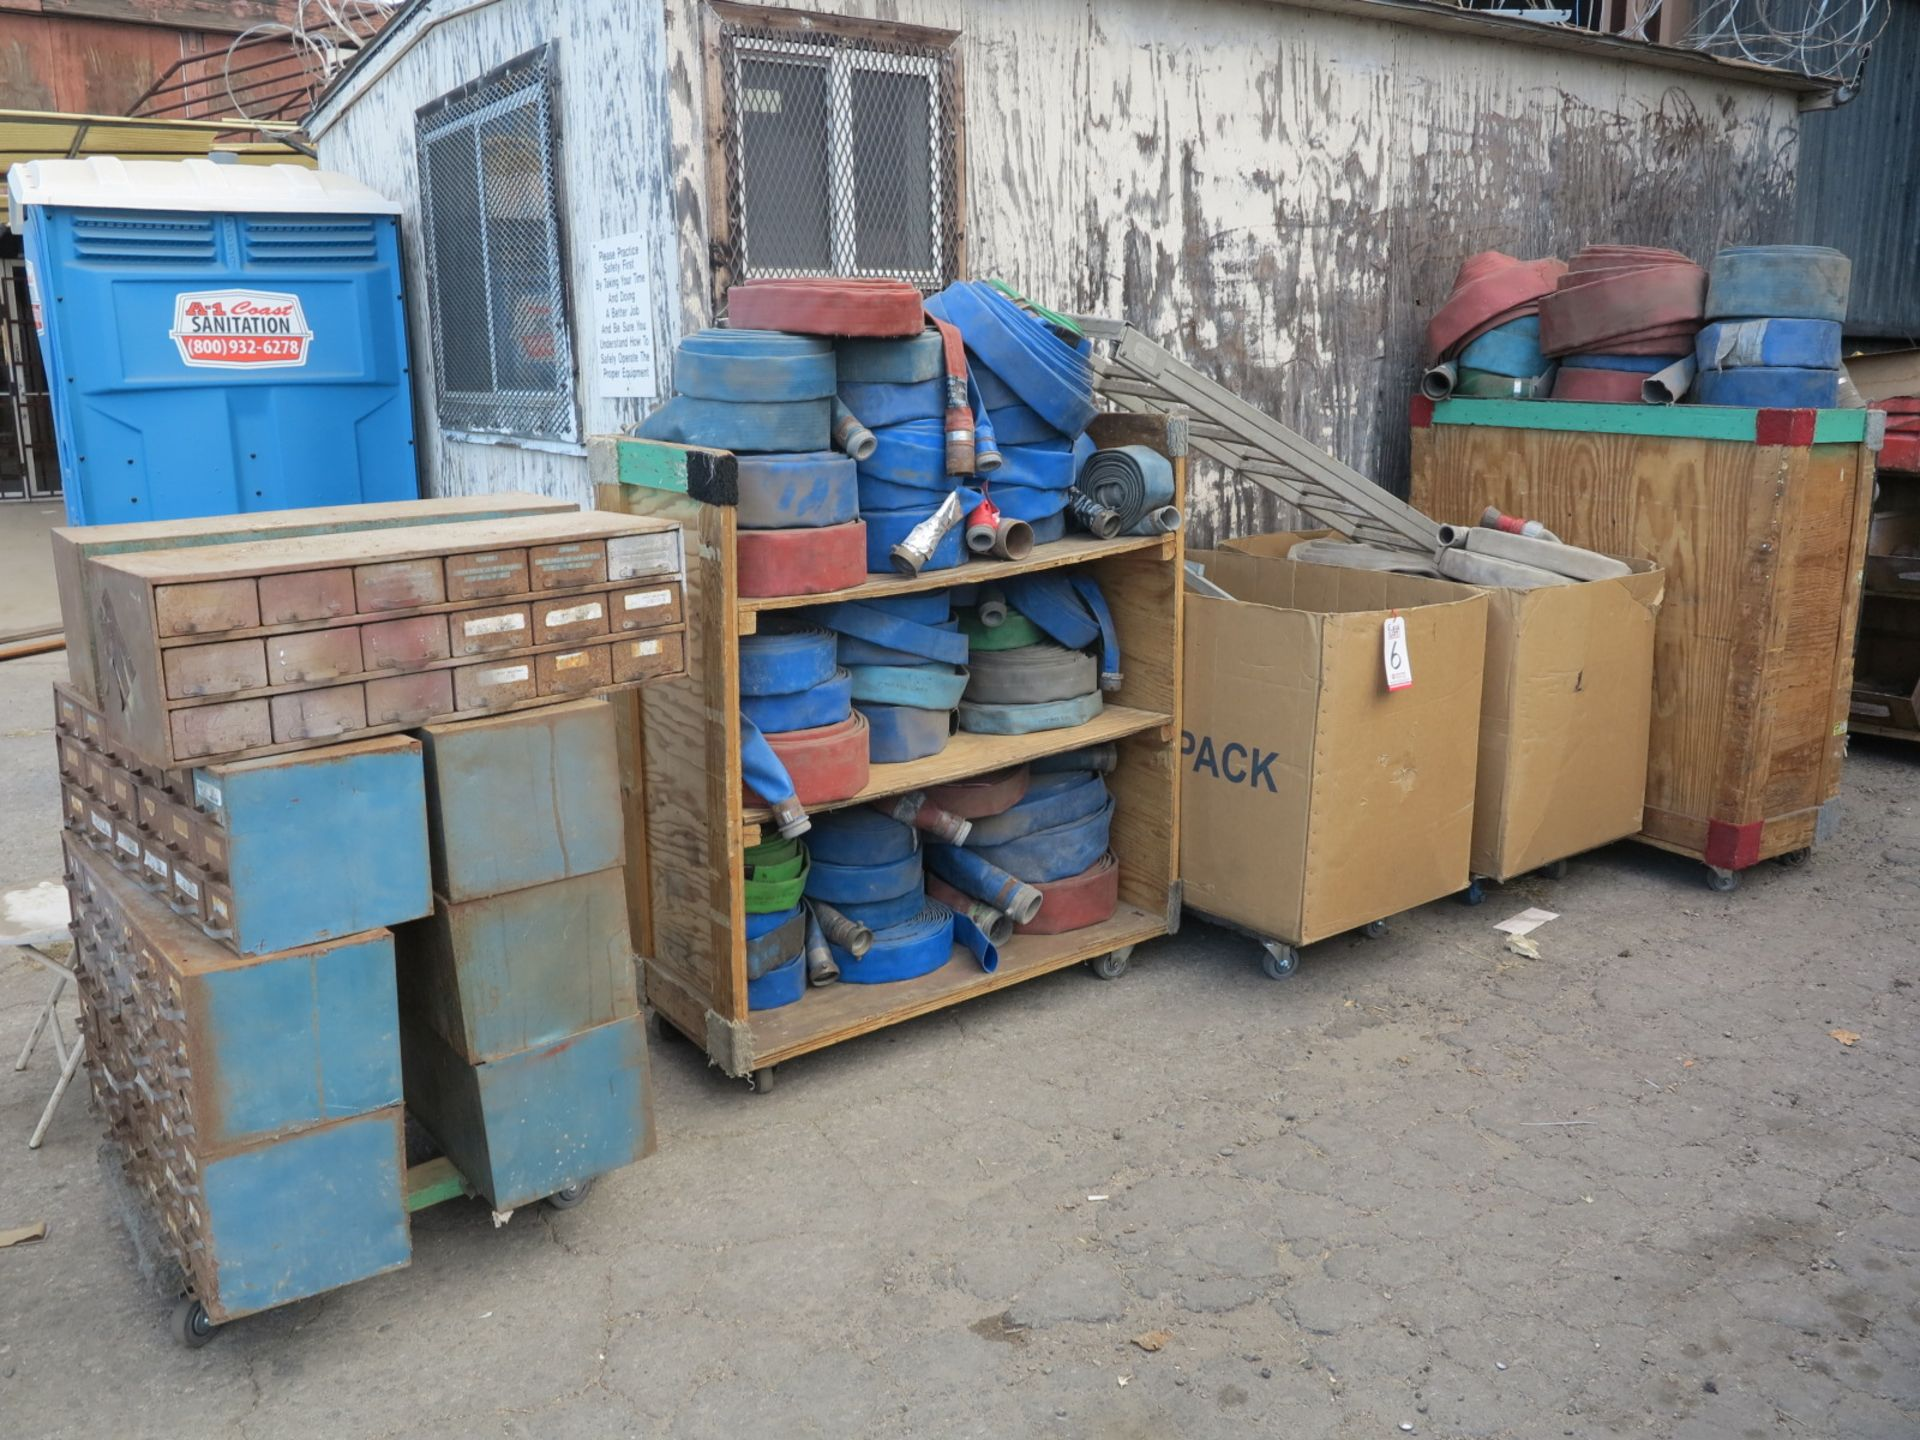 Lot 6 - LOT - (8) PARTS BIN CABINETS, (2) CARTS OF DISCHARGE HOSE, (1) BOX FIRE HOSE, (1) BOX OF EXTENSION